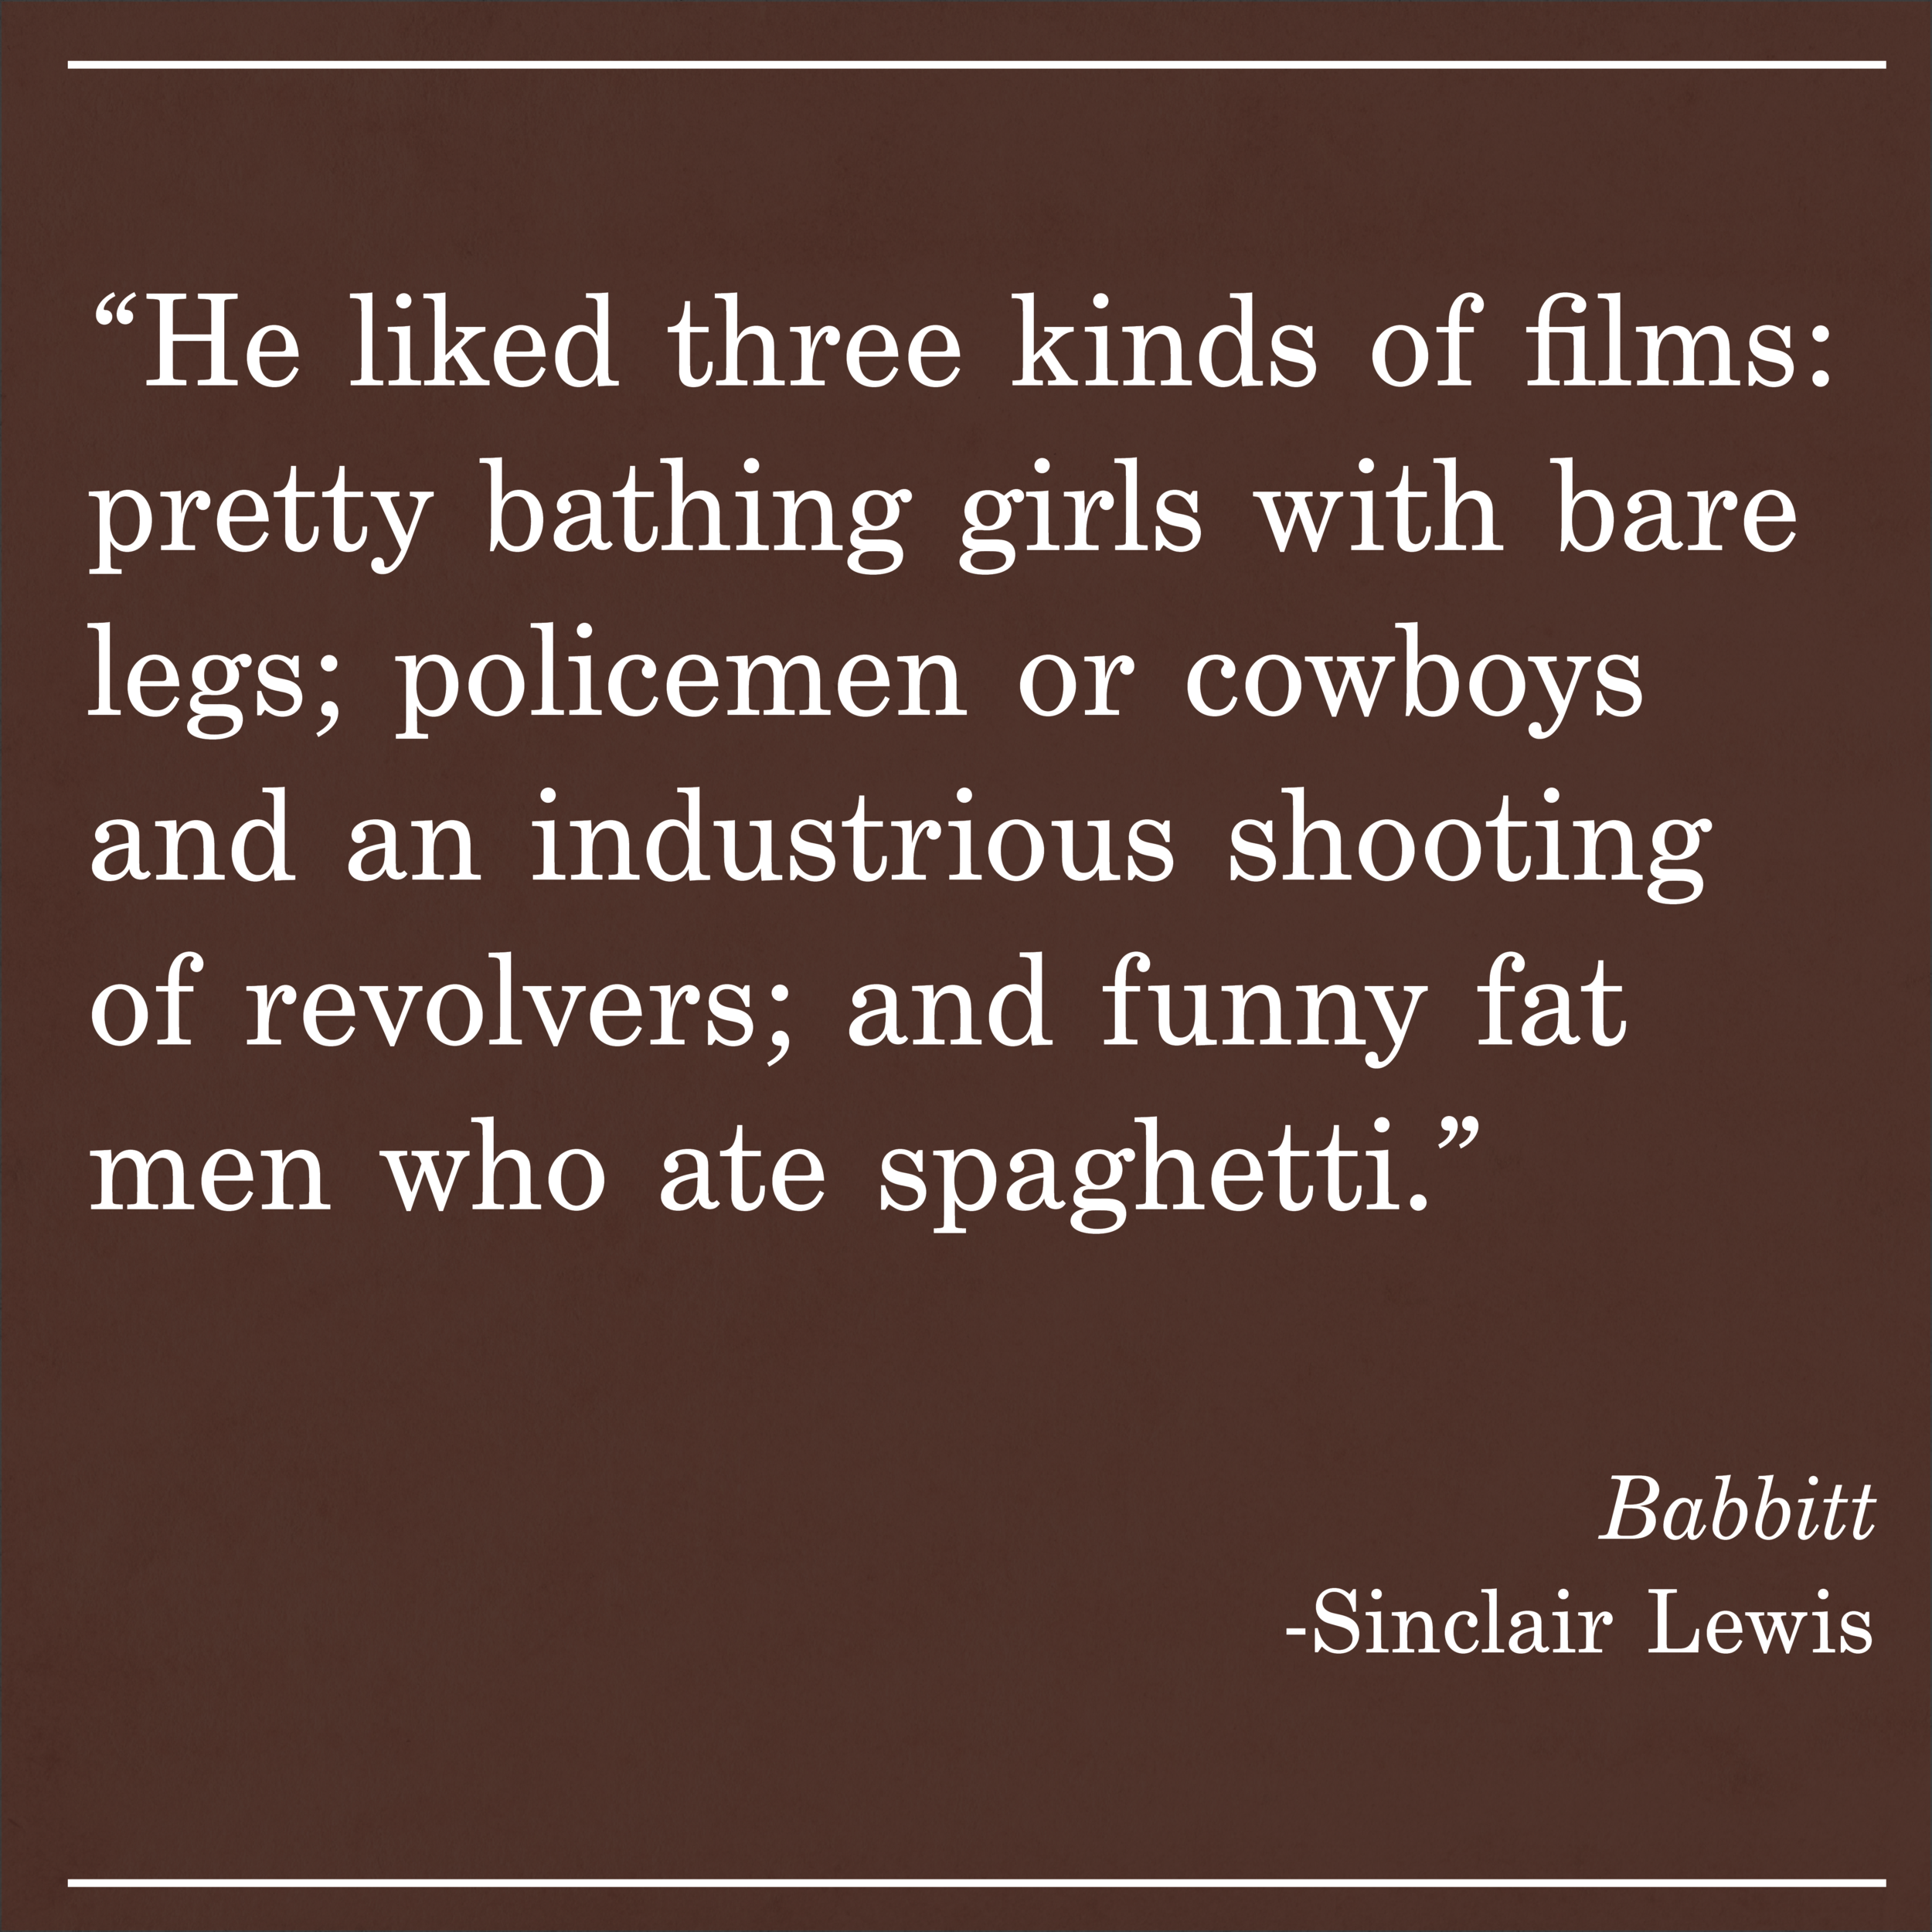 Daily Quote Babbitt by Sinclair Lewis